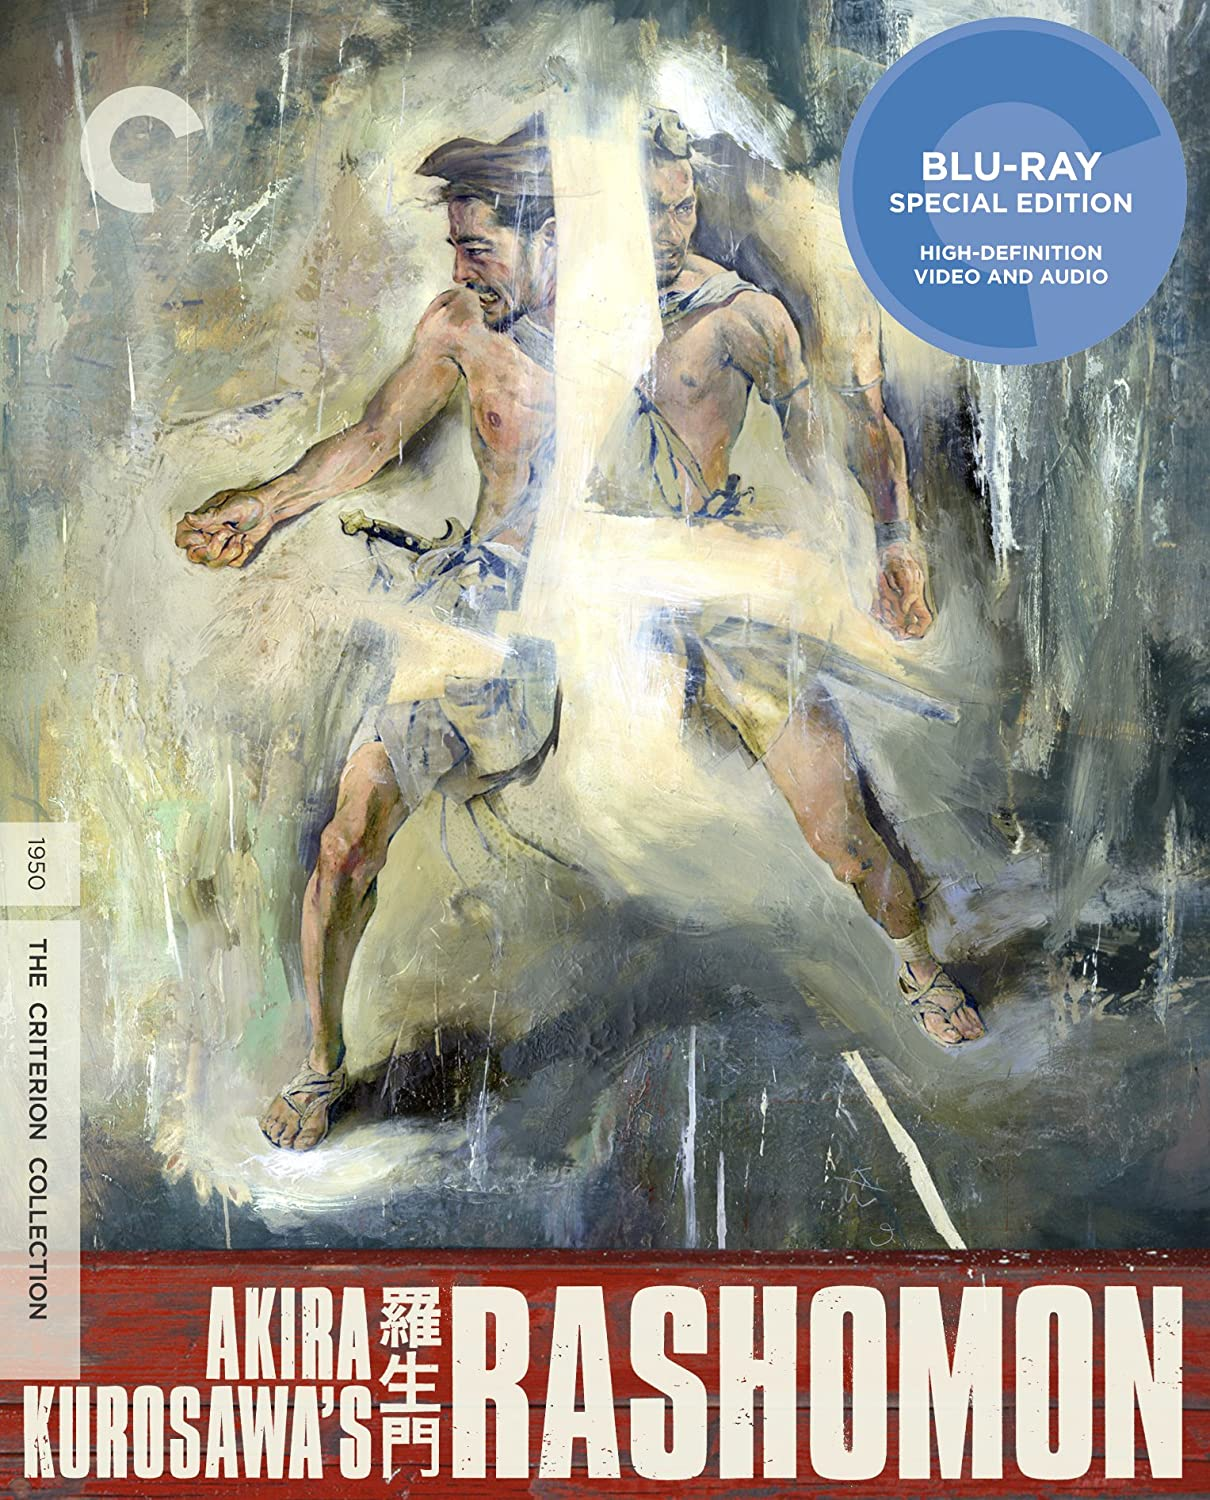 com rashomon the criterion collection blu ray toshiro com rashomon the criterion collection blu ray toshiro mifune akira kurosawa movies tv